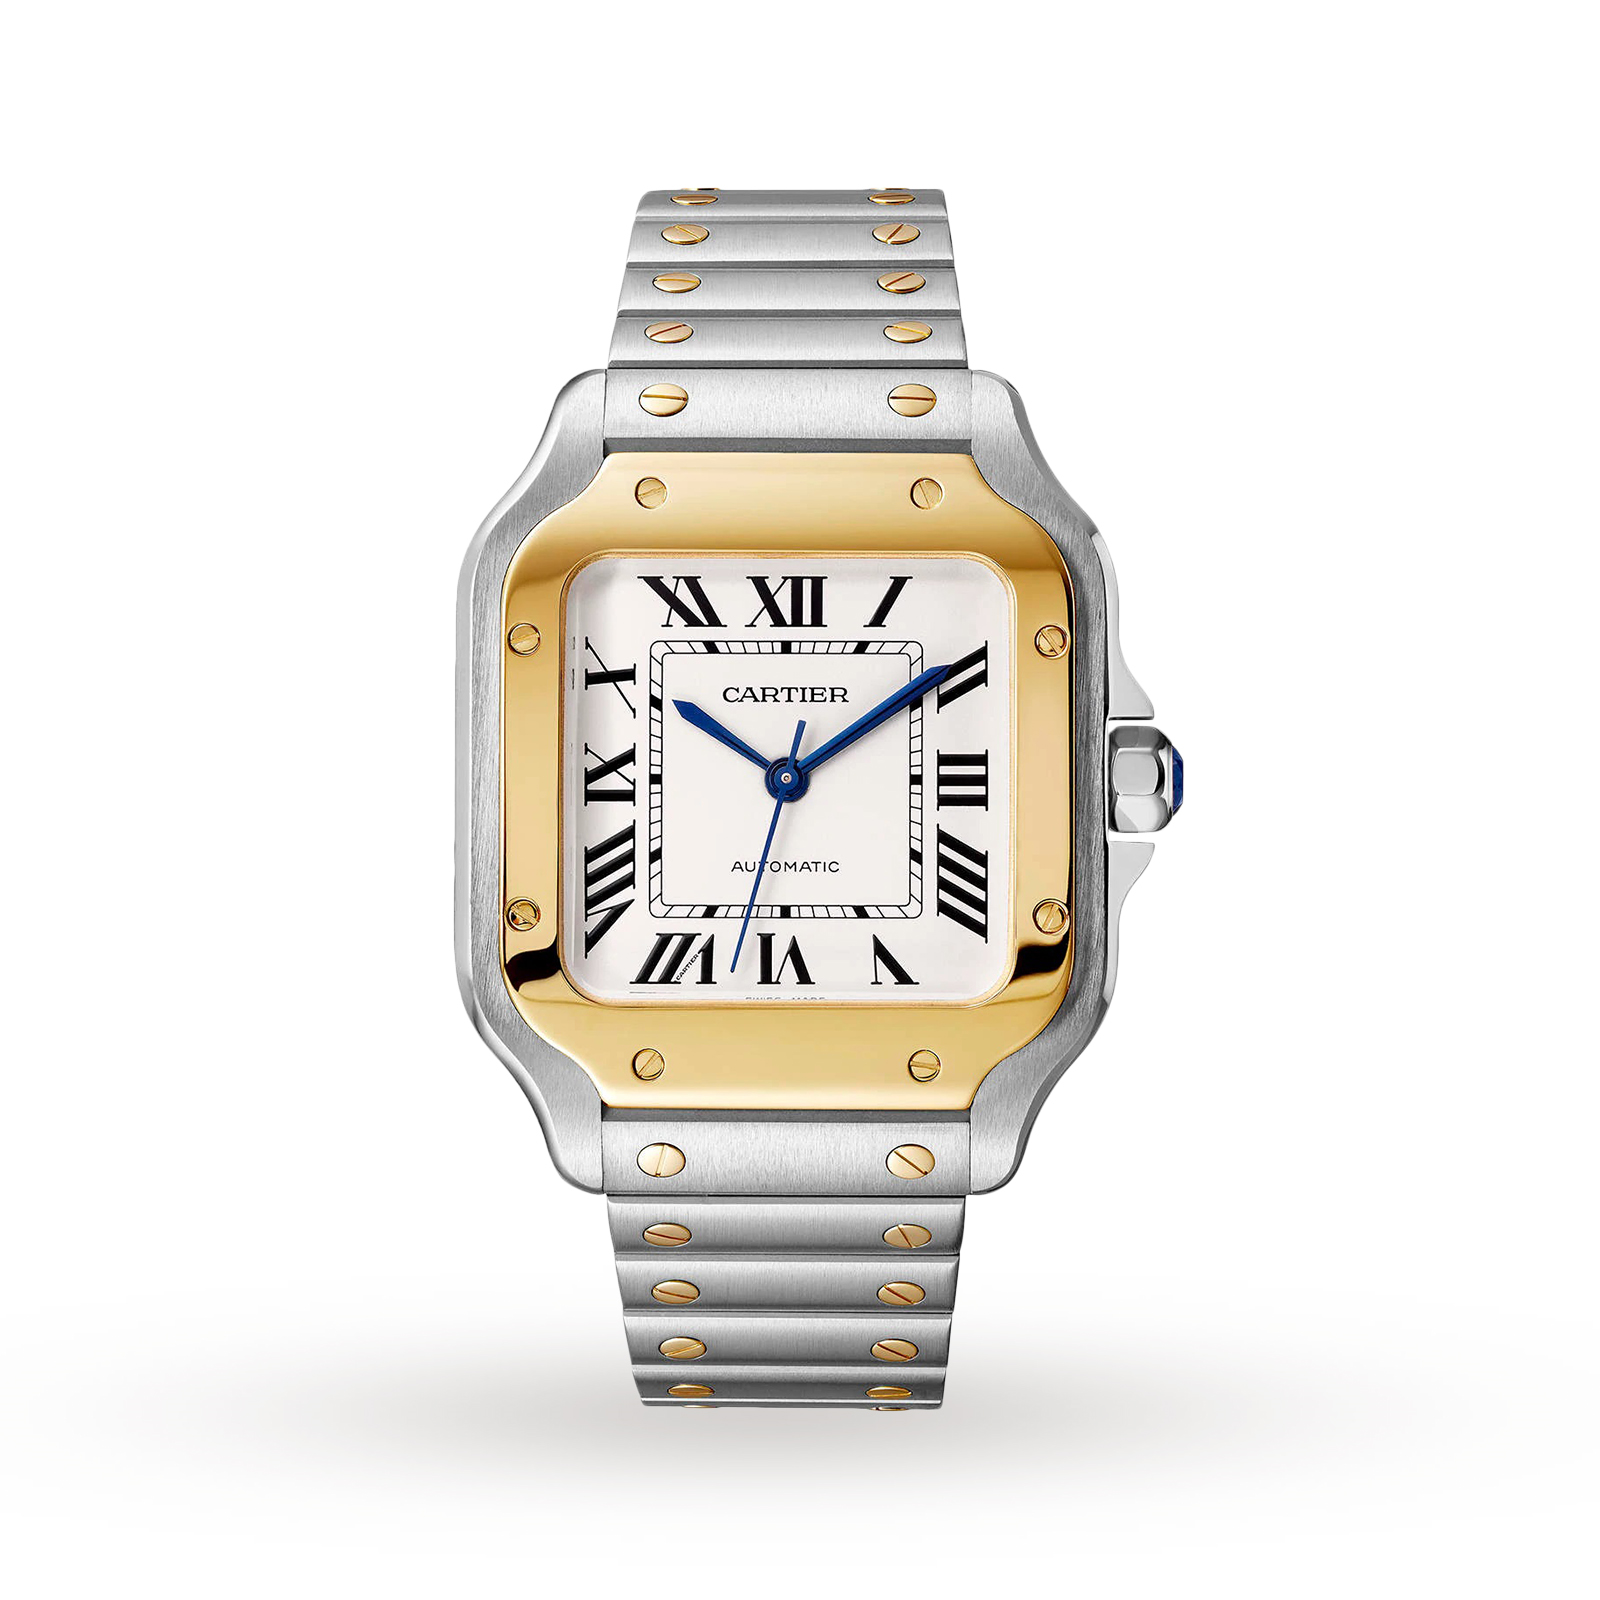 cartier selector p santos of de switzerland watch watches